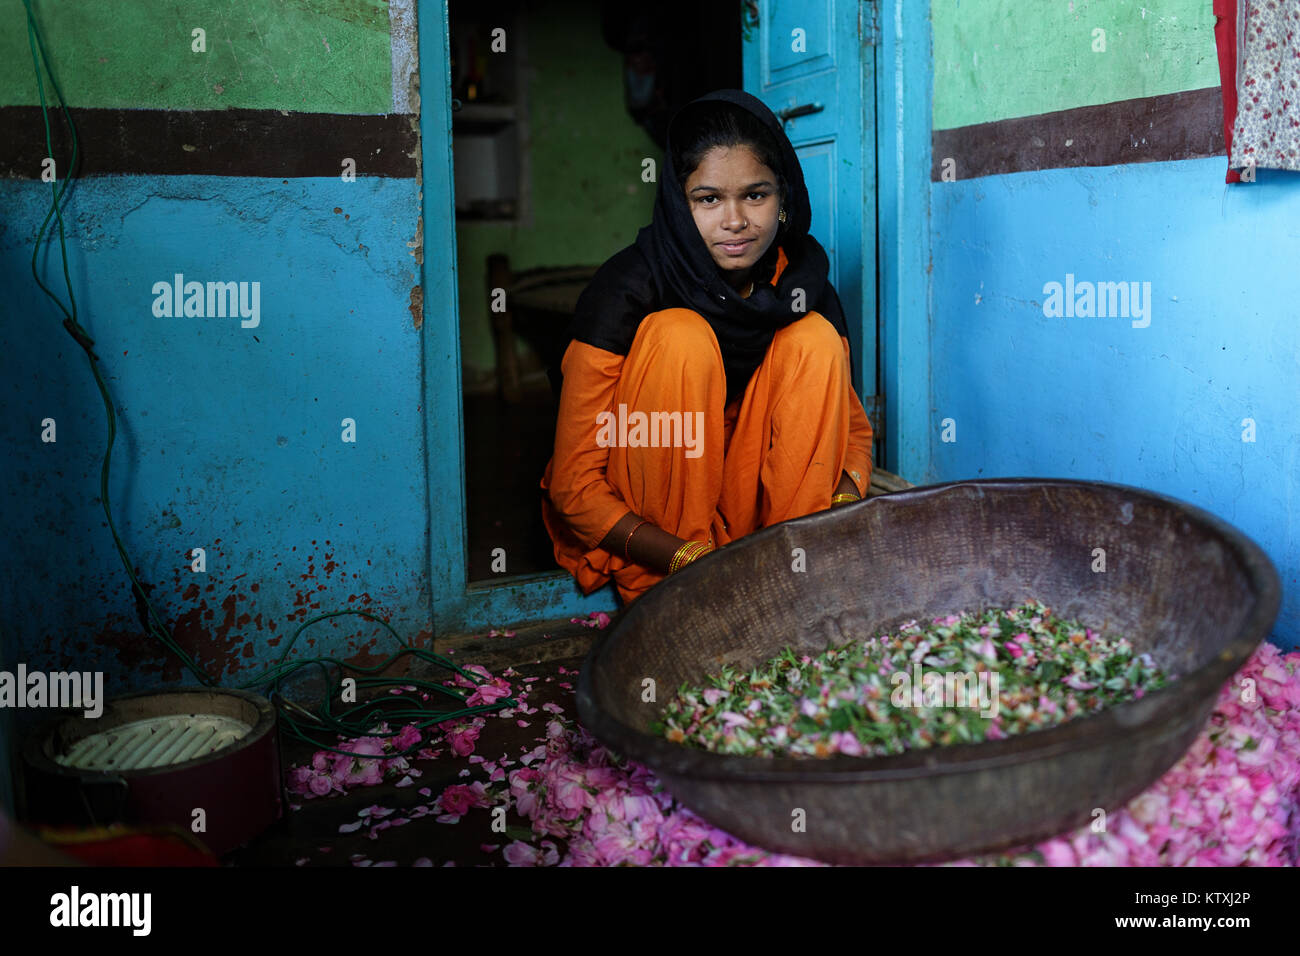 Shy young indian girl in orange traditional dress with hair covered with black shawl picking rose petals in her - Stock Image